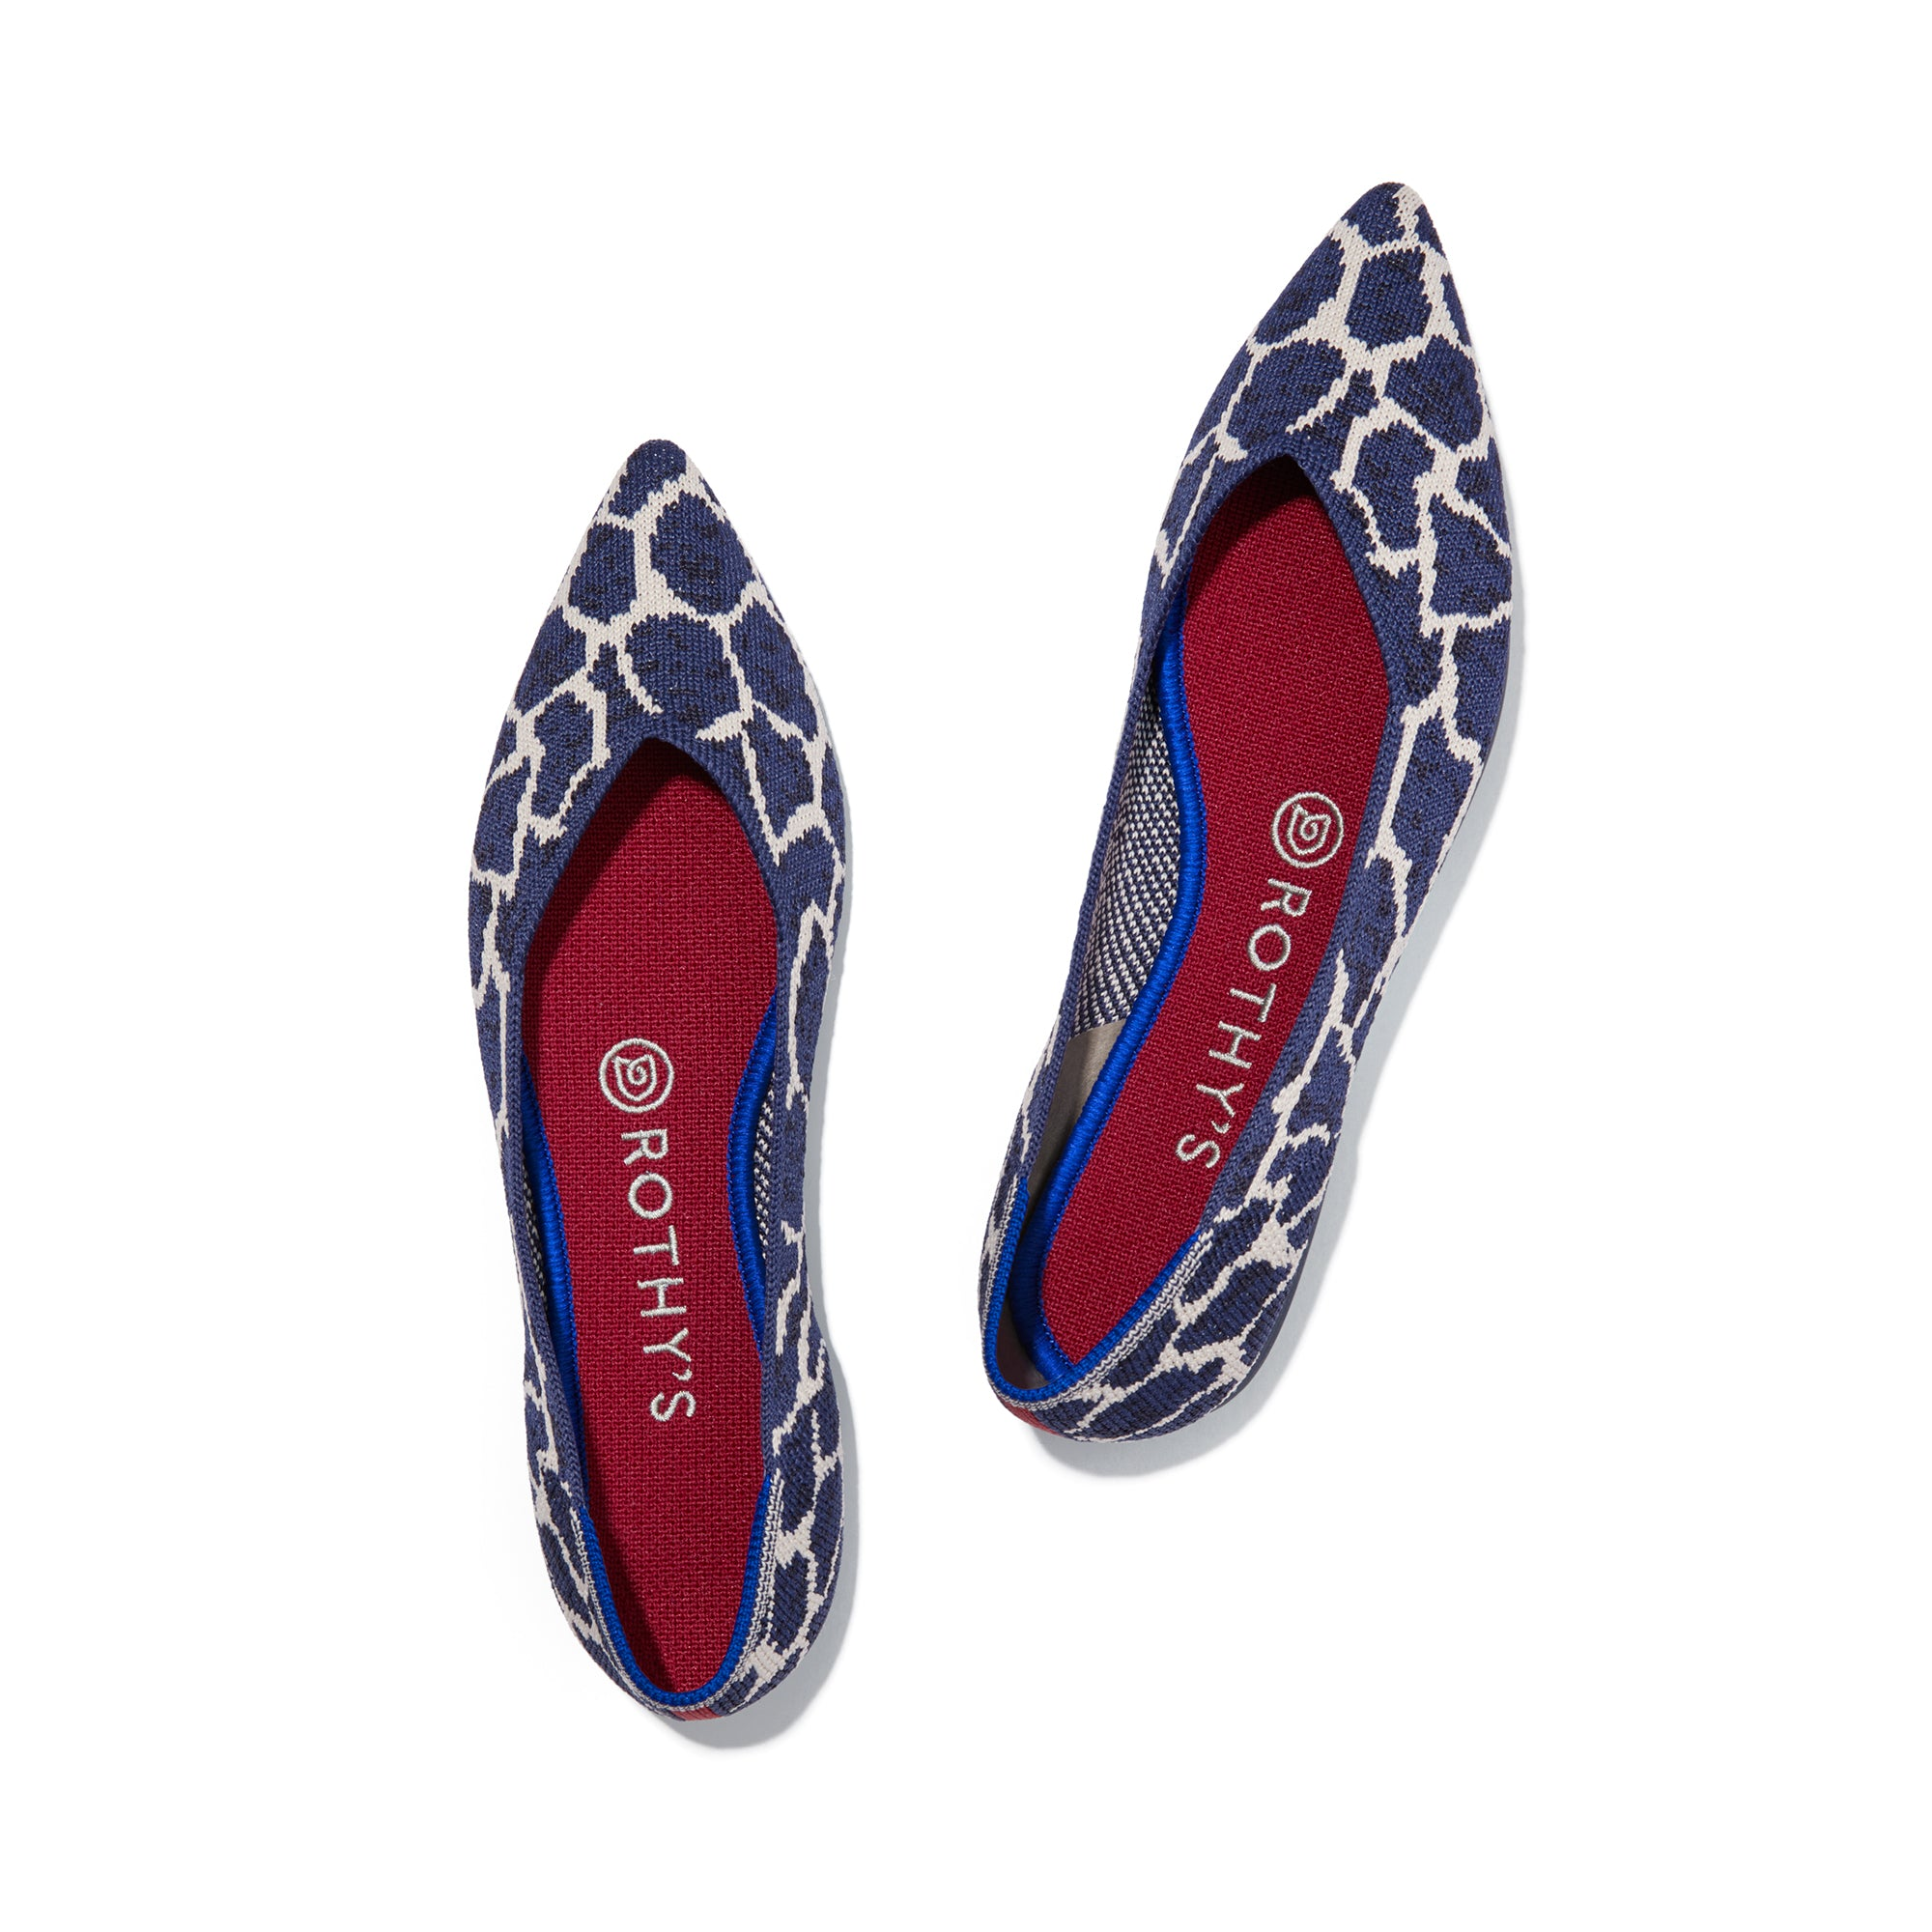 A pair of The Point shoe in Indigo Giraffe shown from the top view.